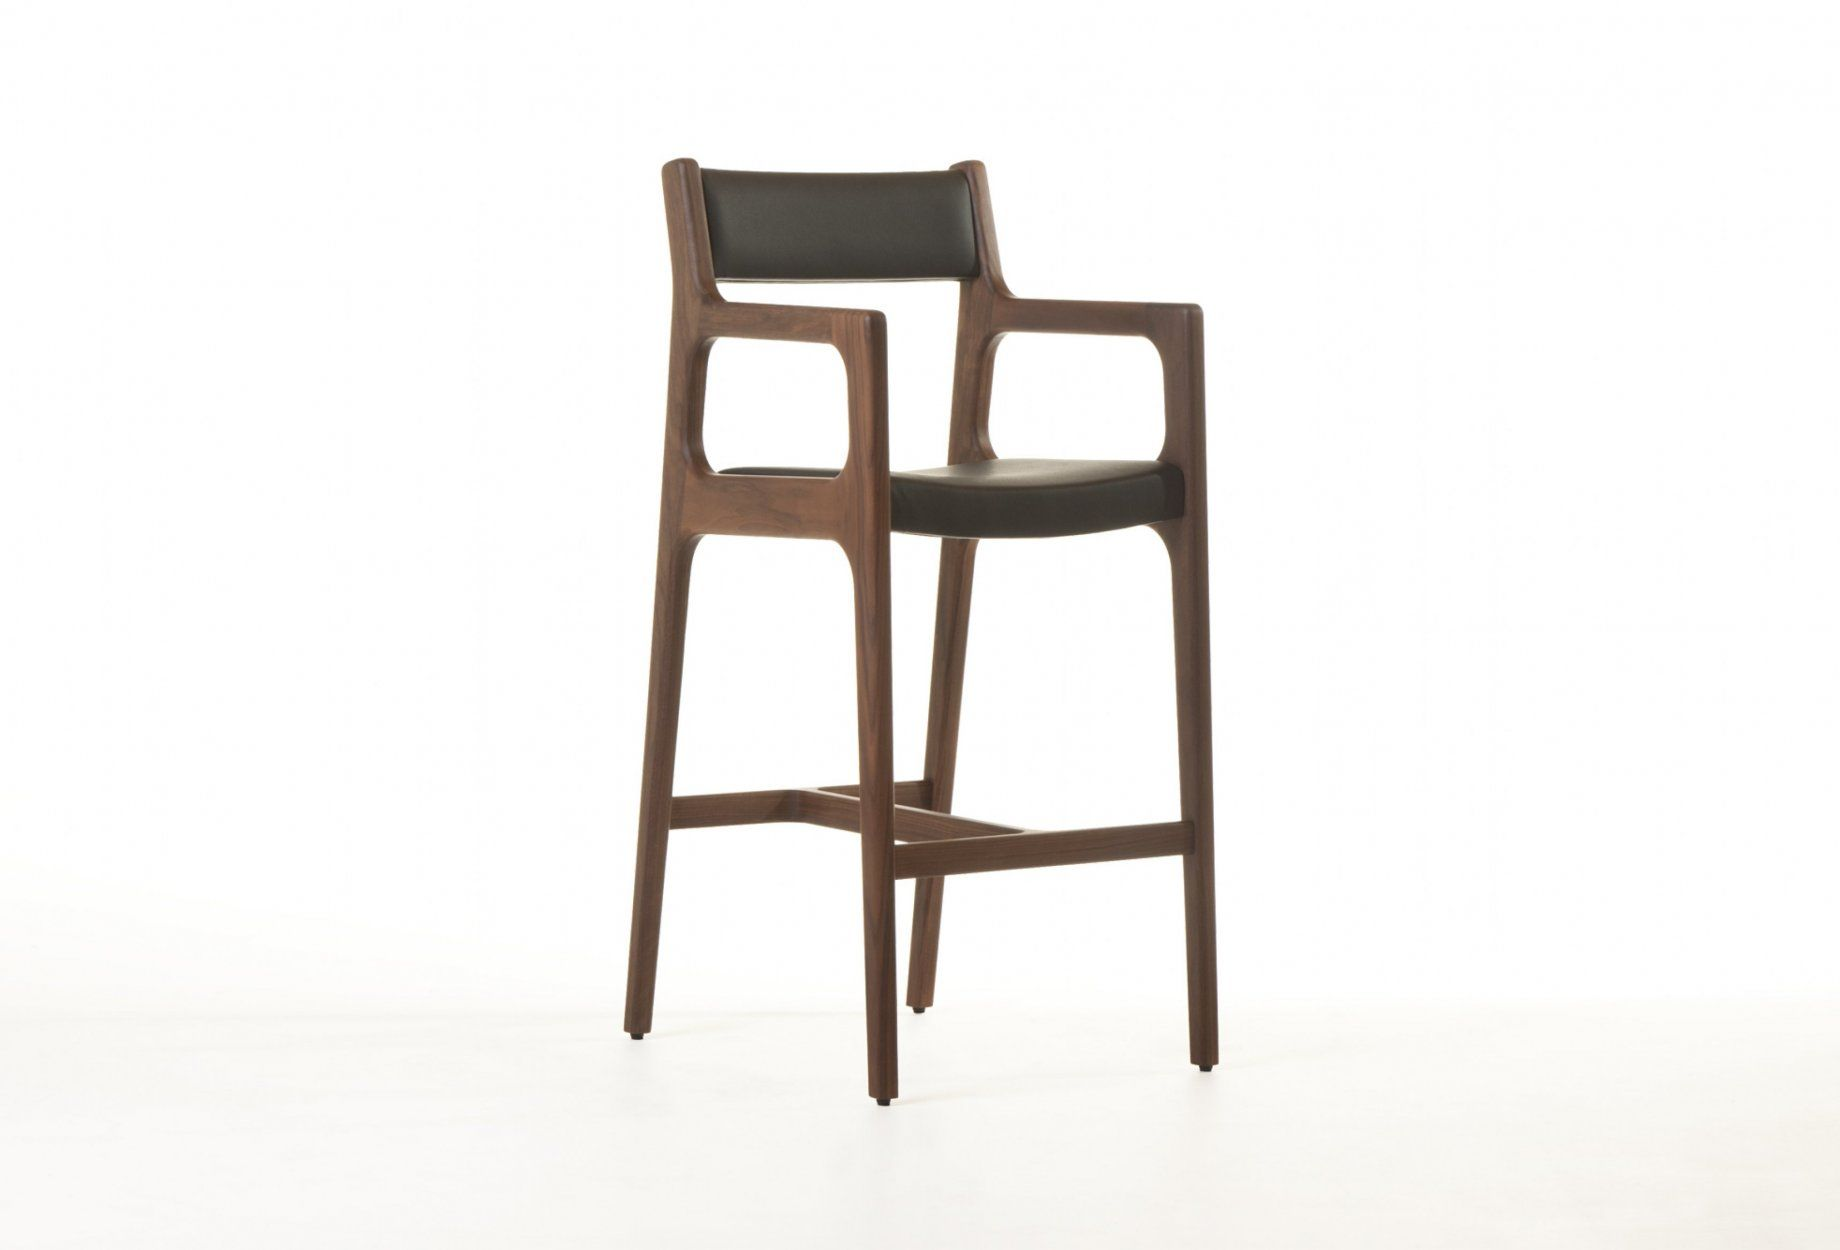 Viewing autoban 219st deer bar stool with arms product